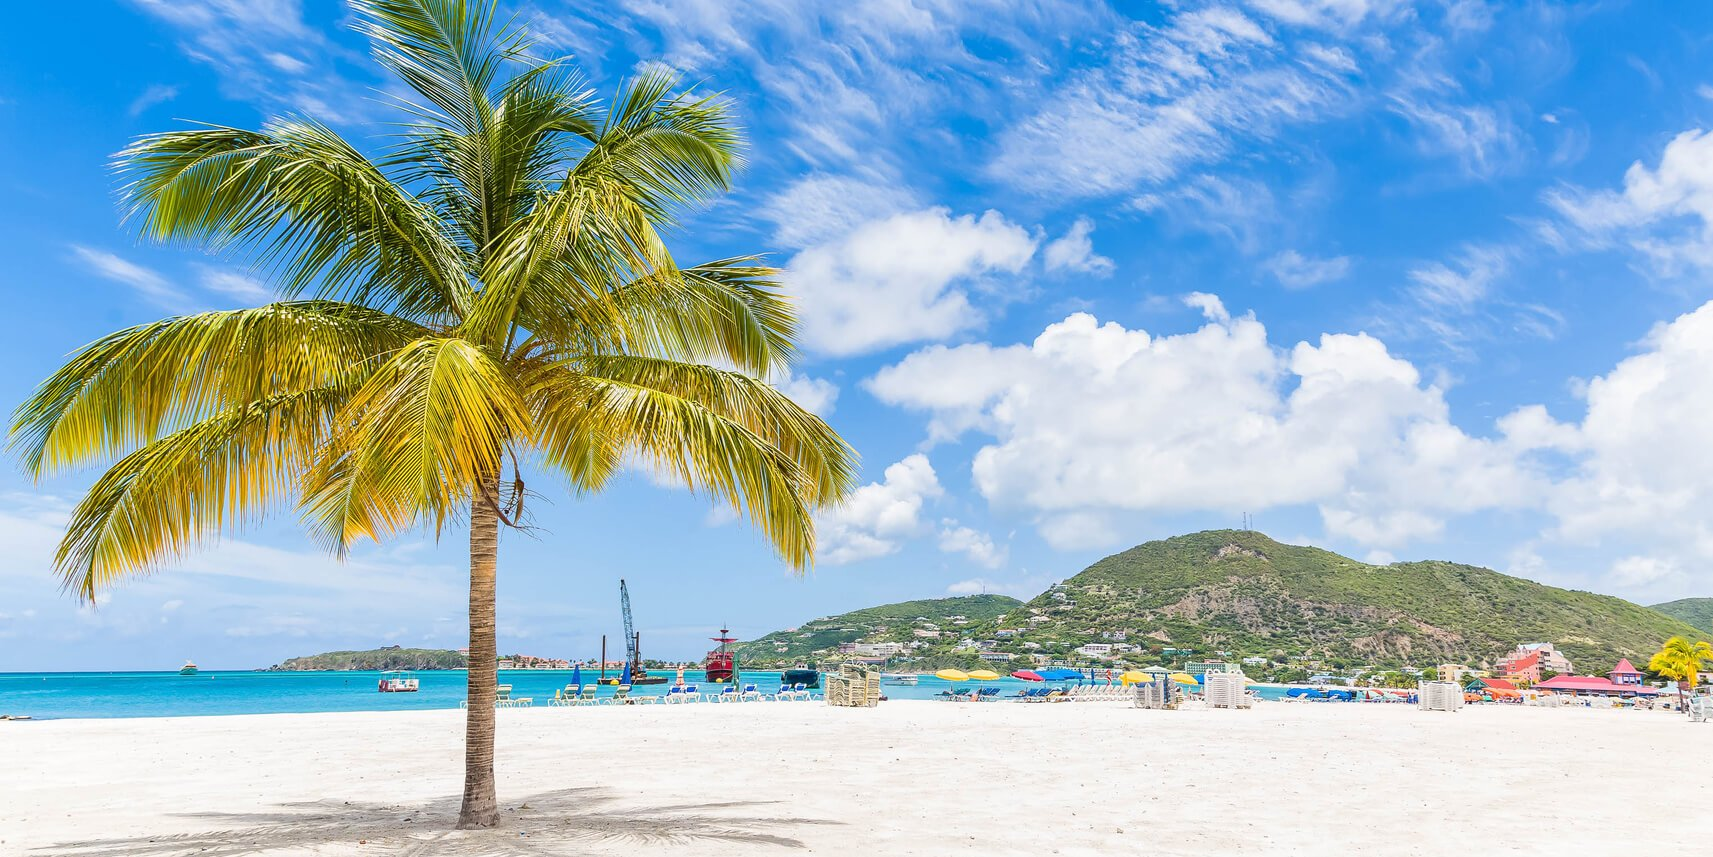 St. Martin Vacations - Caribbean Vacations